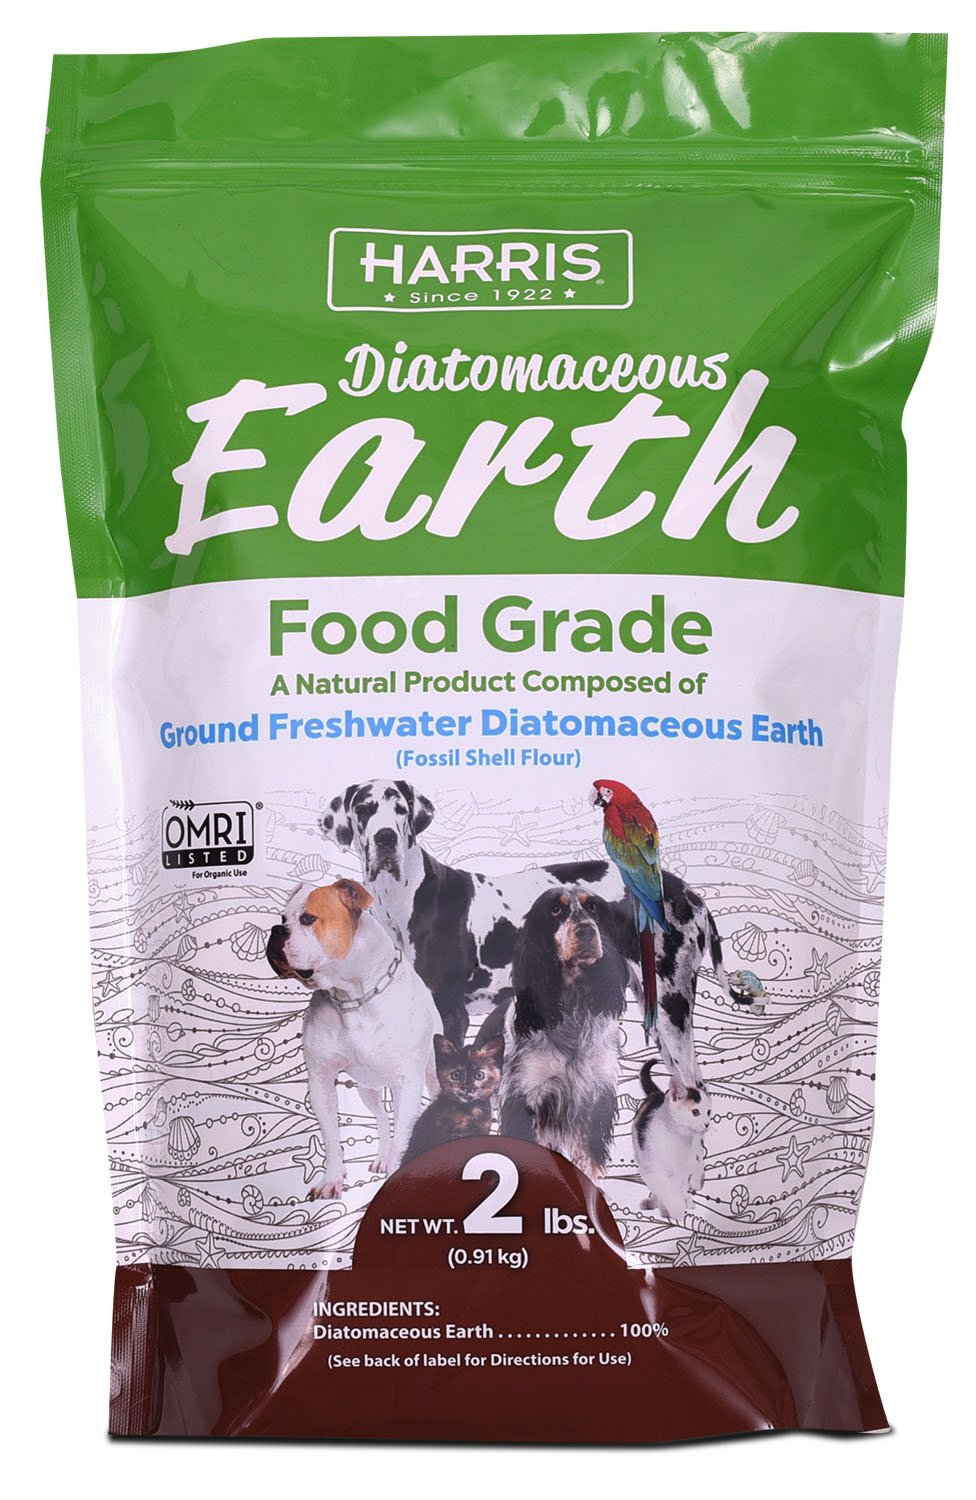 Harris Food Grade Diatomaceous Earth for Pets, for Cats, Dogs, Horses and Pets, 2lb by Harris